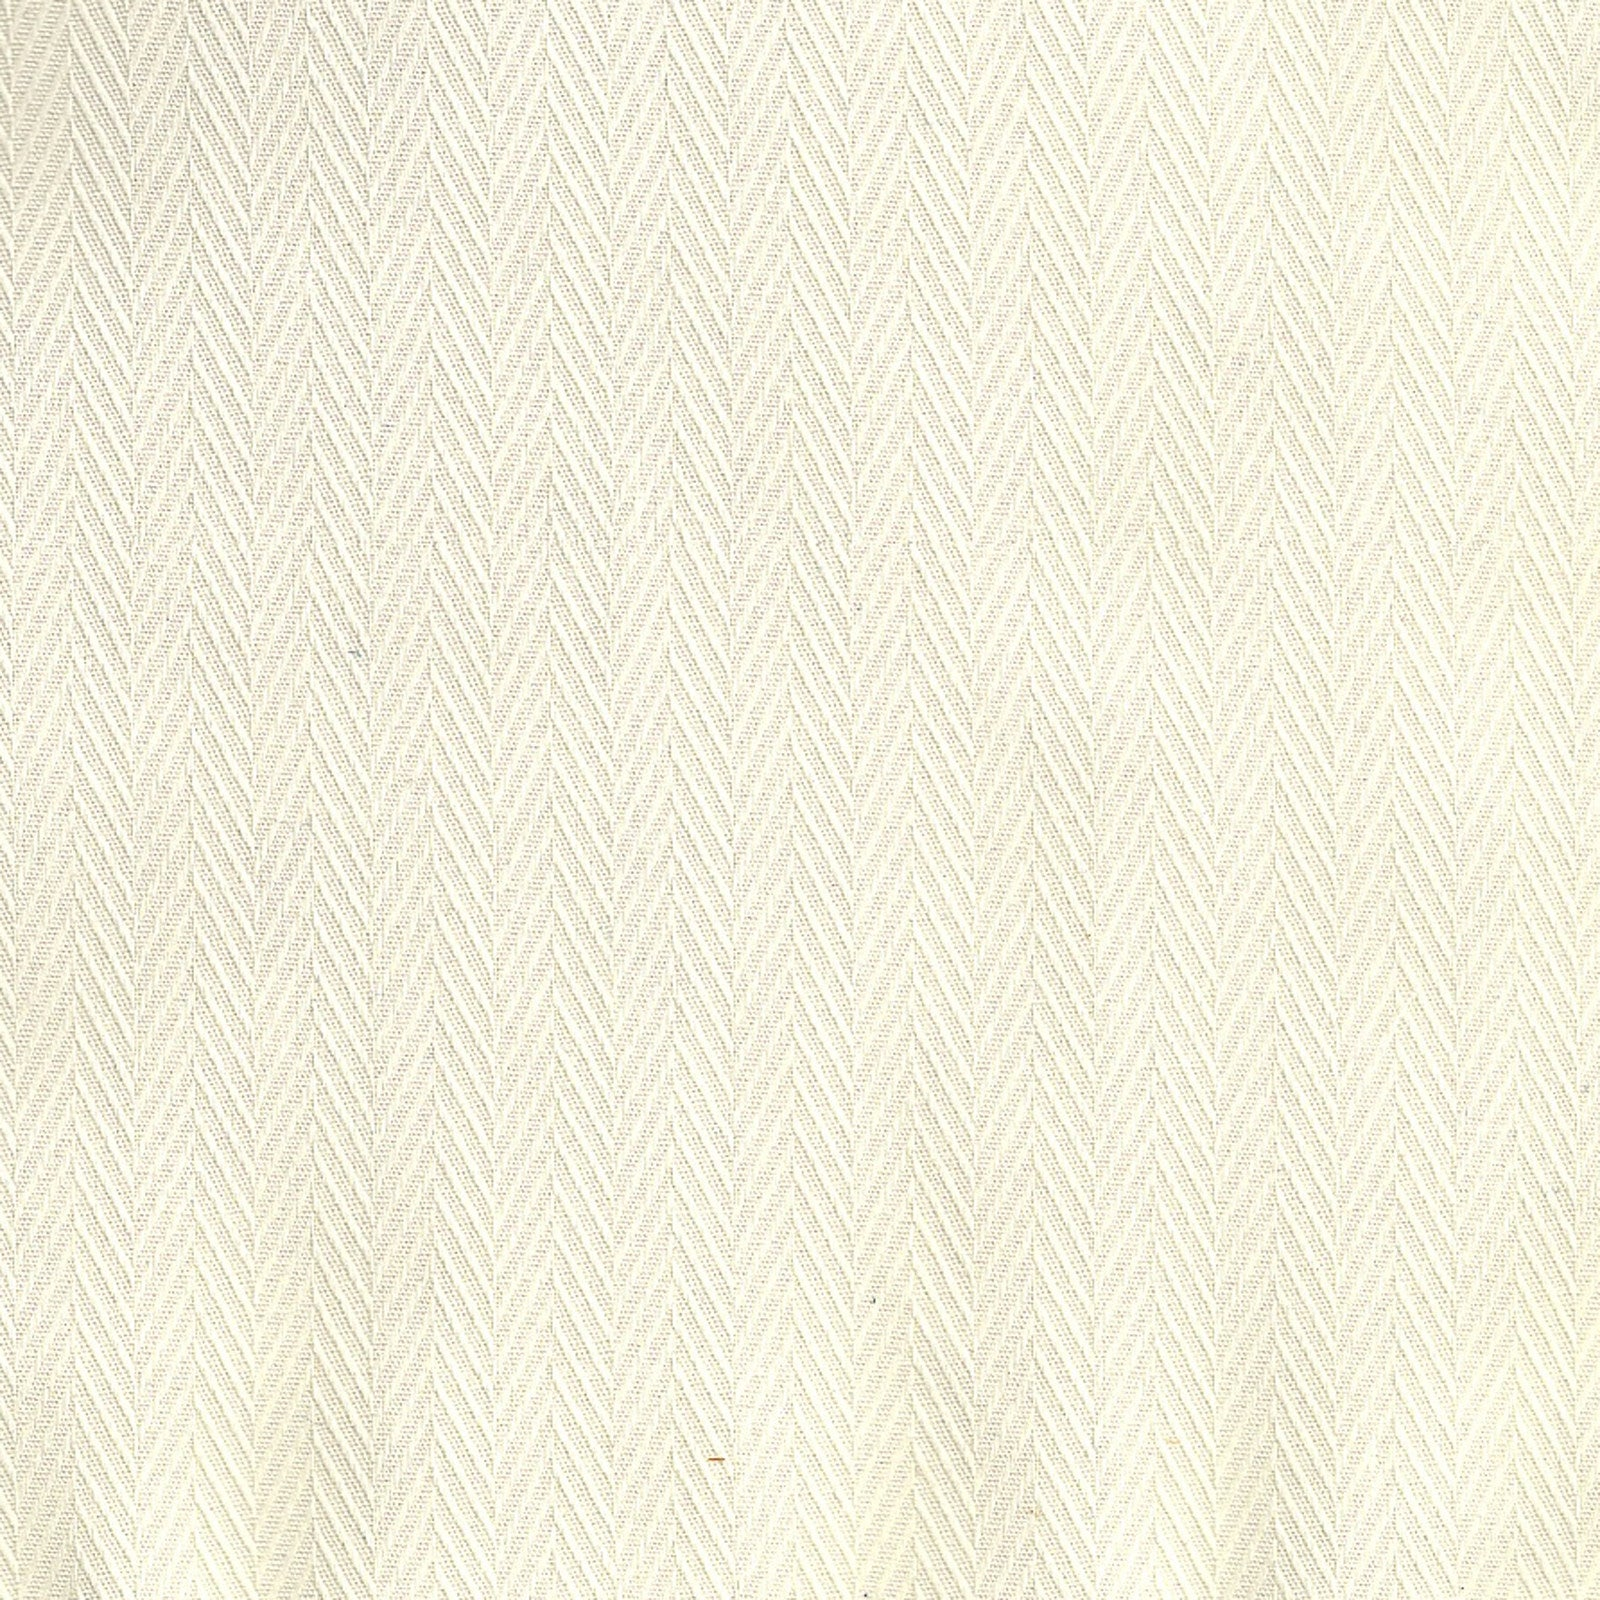 Solid Cotton - Oyster Herringbone Fabric